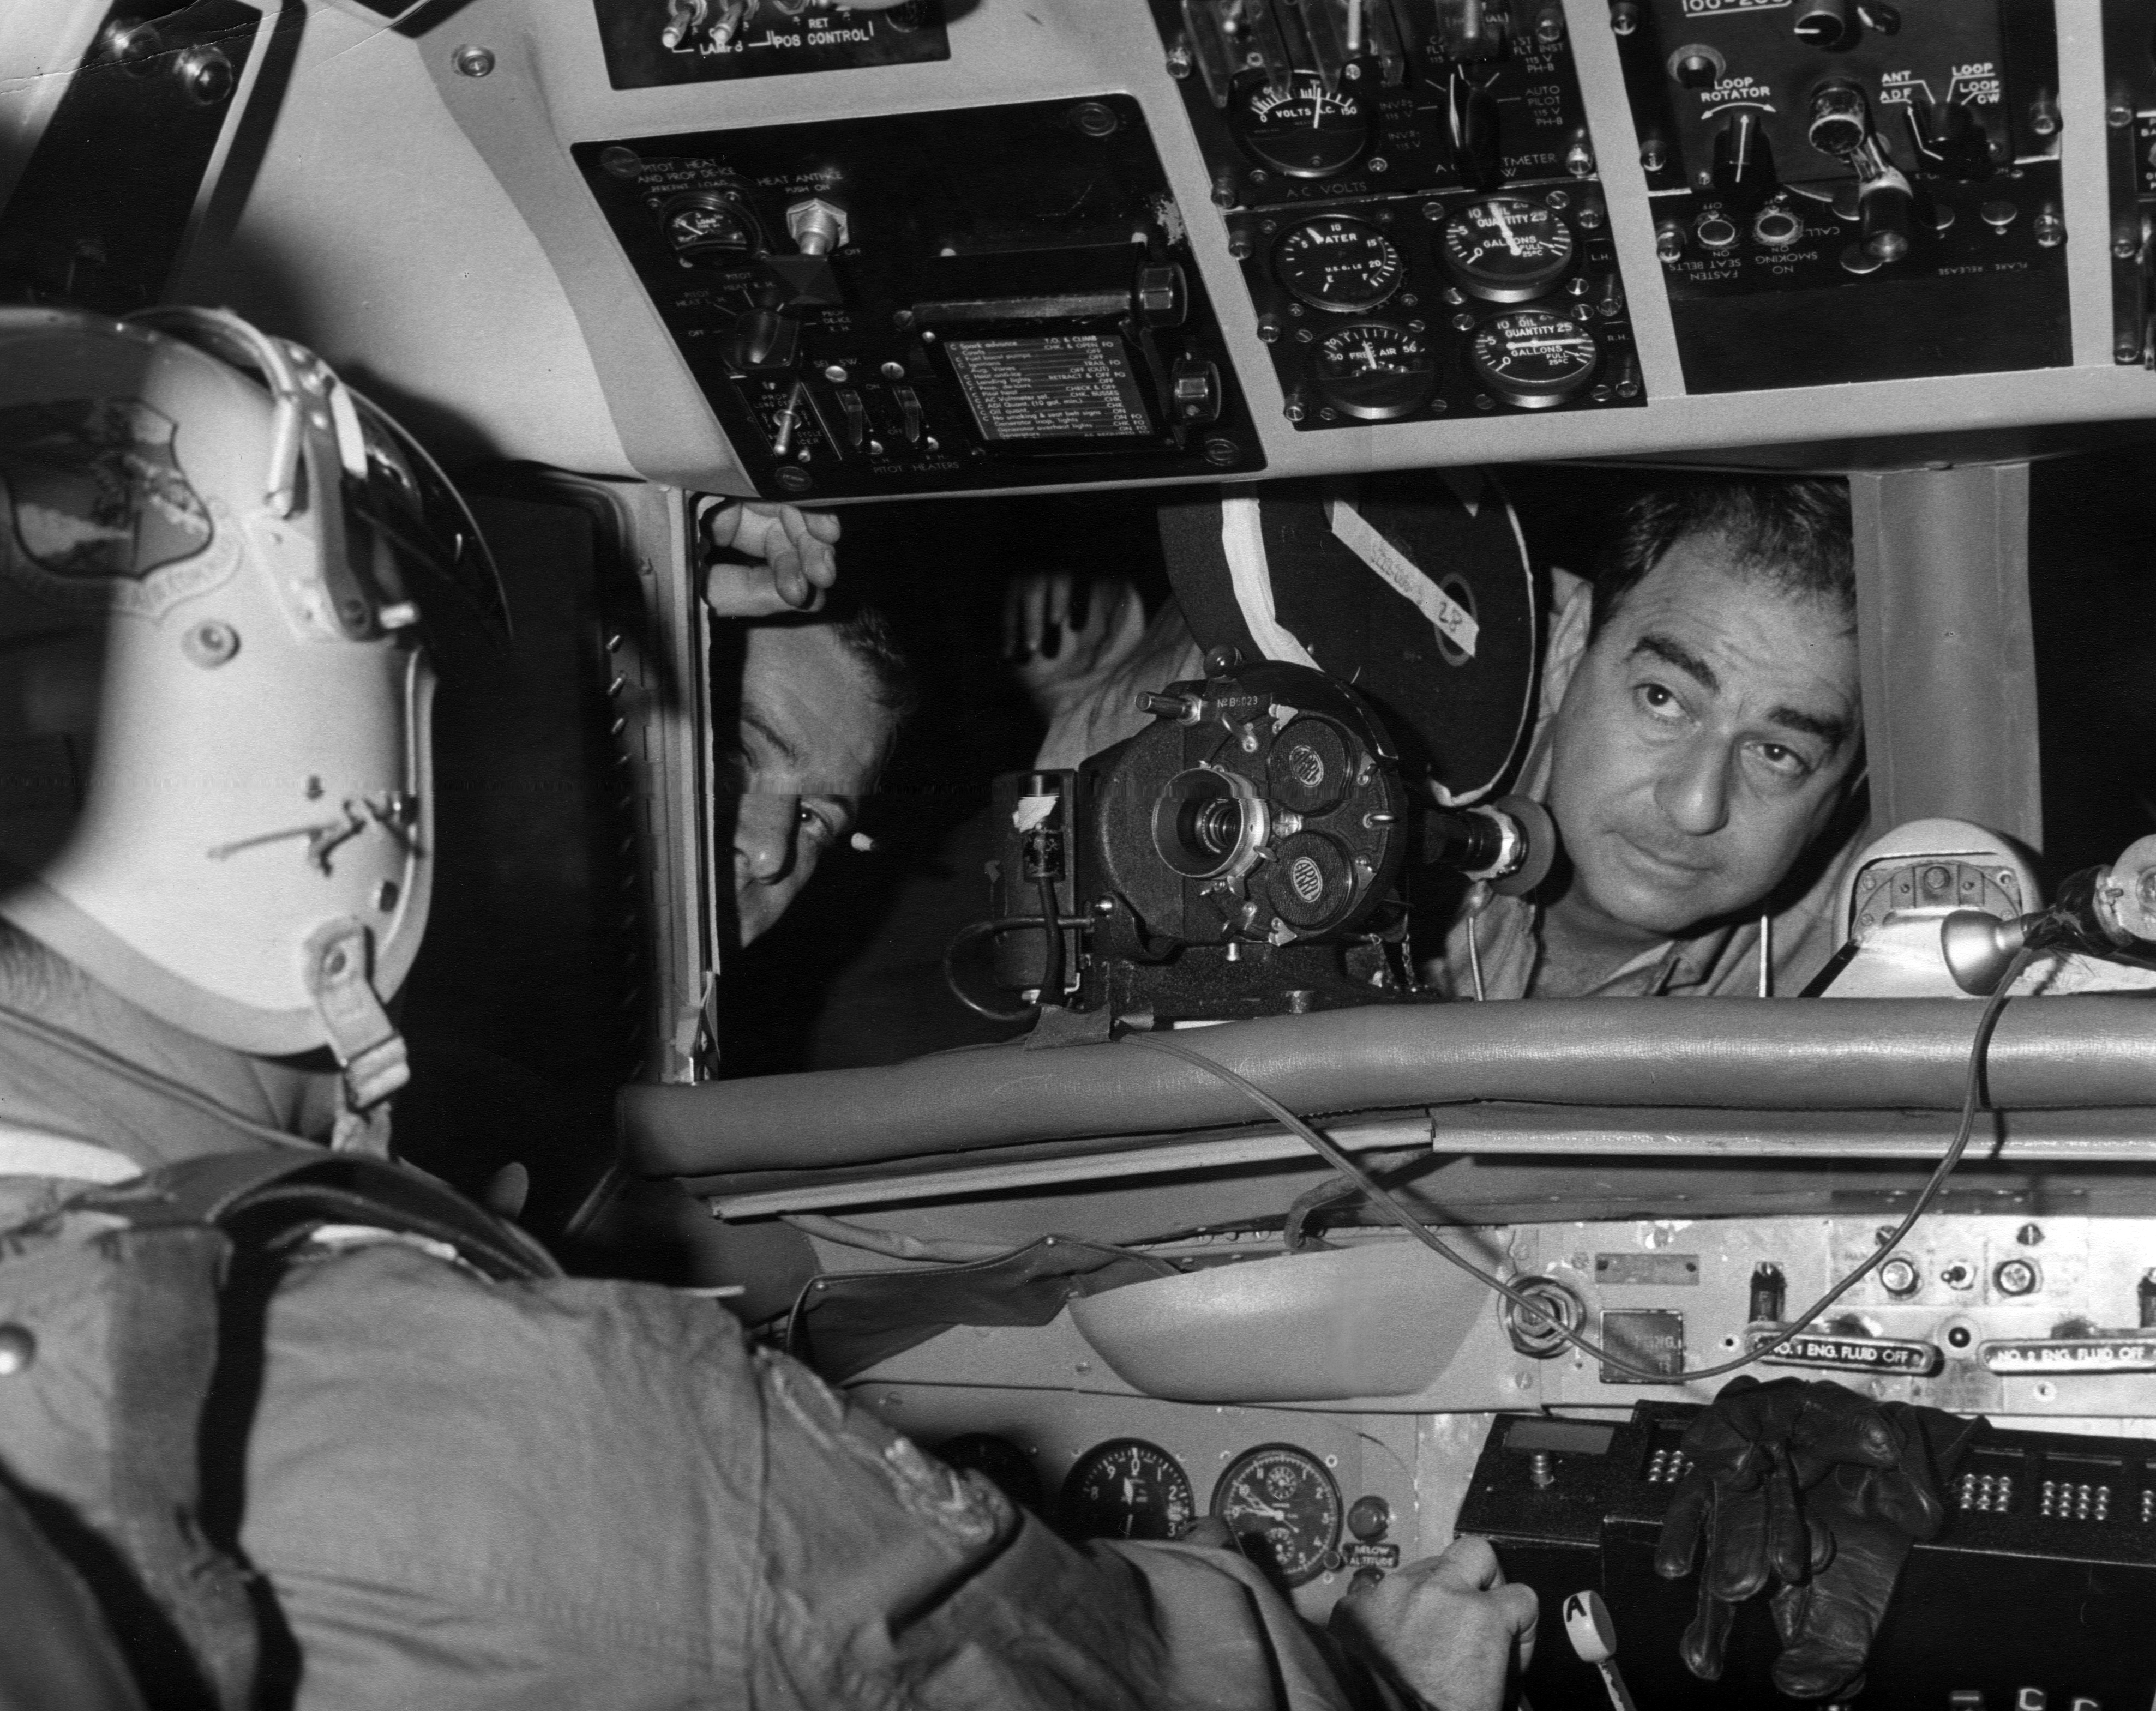 Hirschfeld angles into the cockpit of a B-52 bomber while filming the Cold War drama Fail Safe (1964).